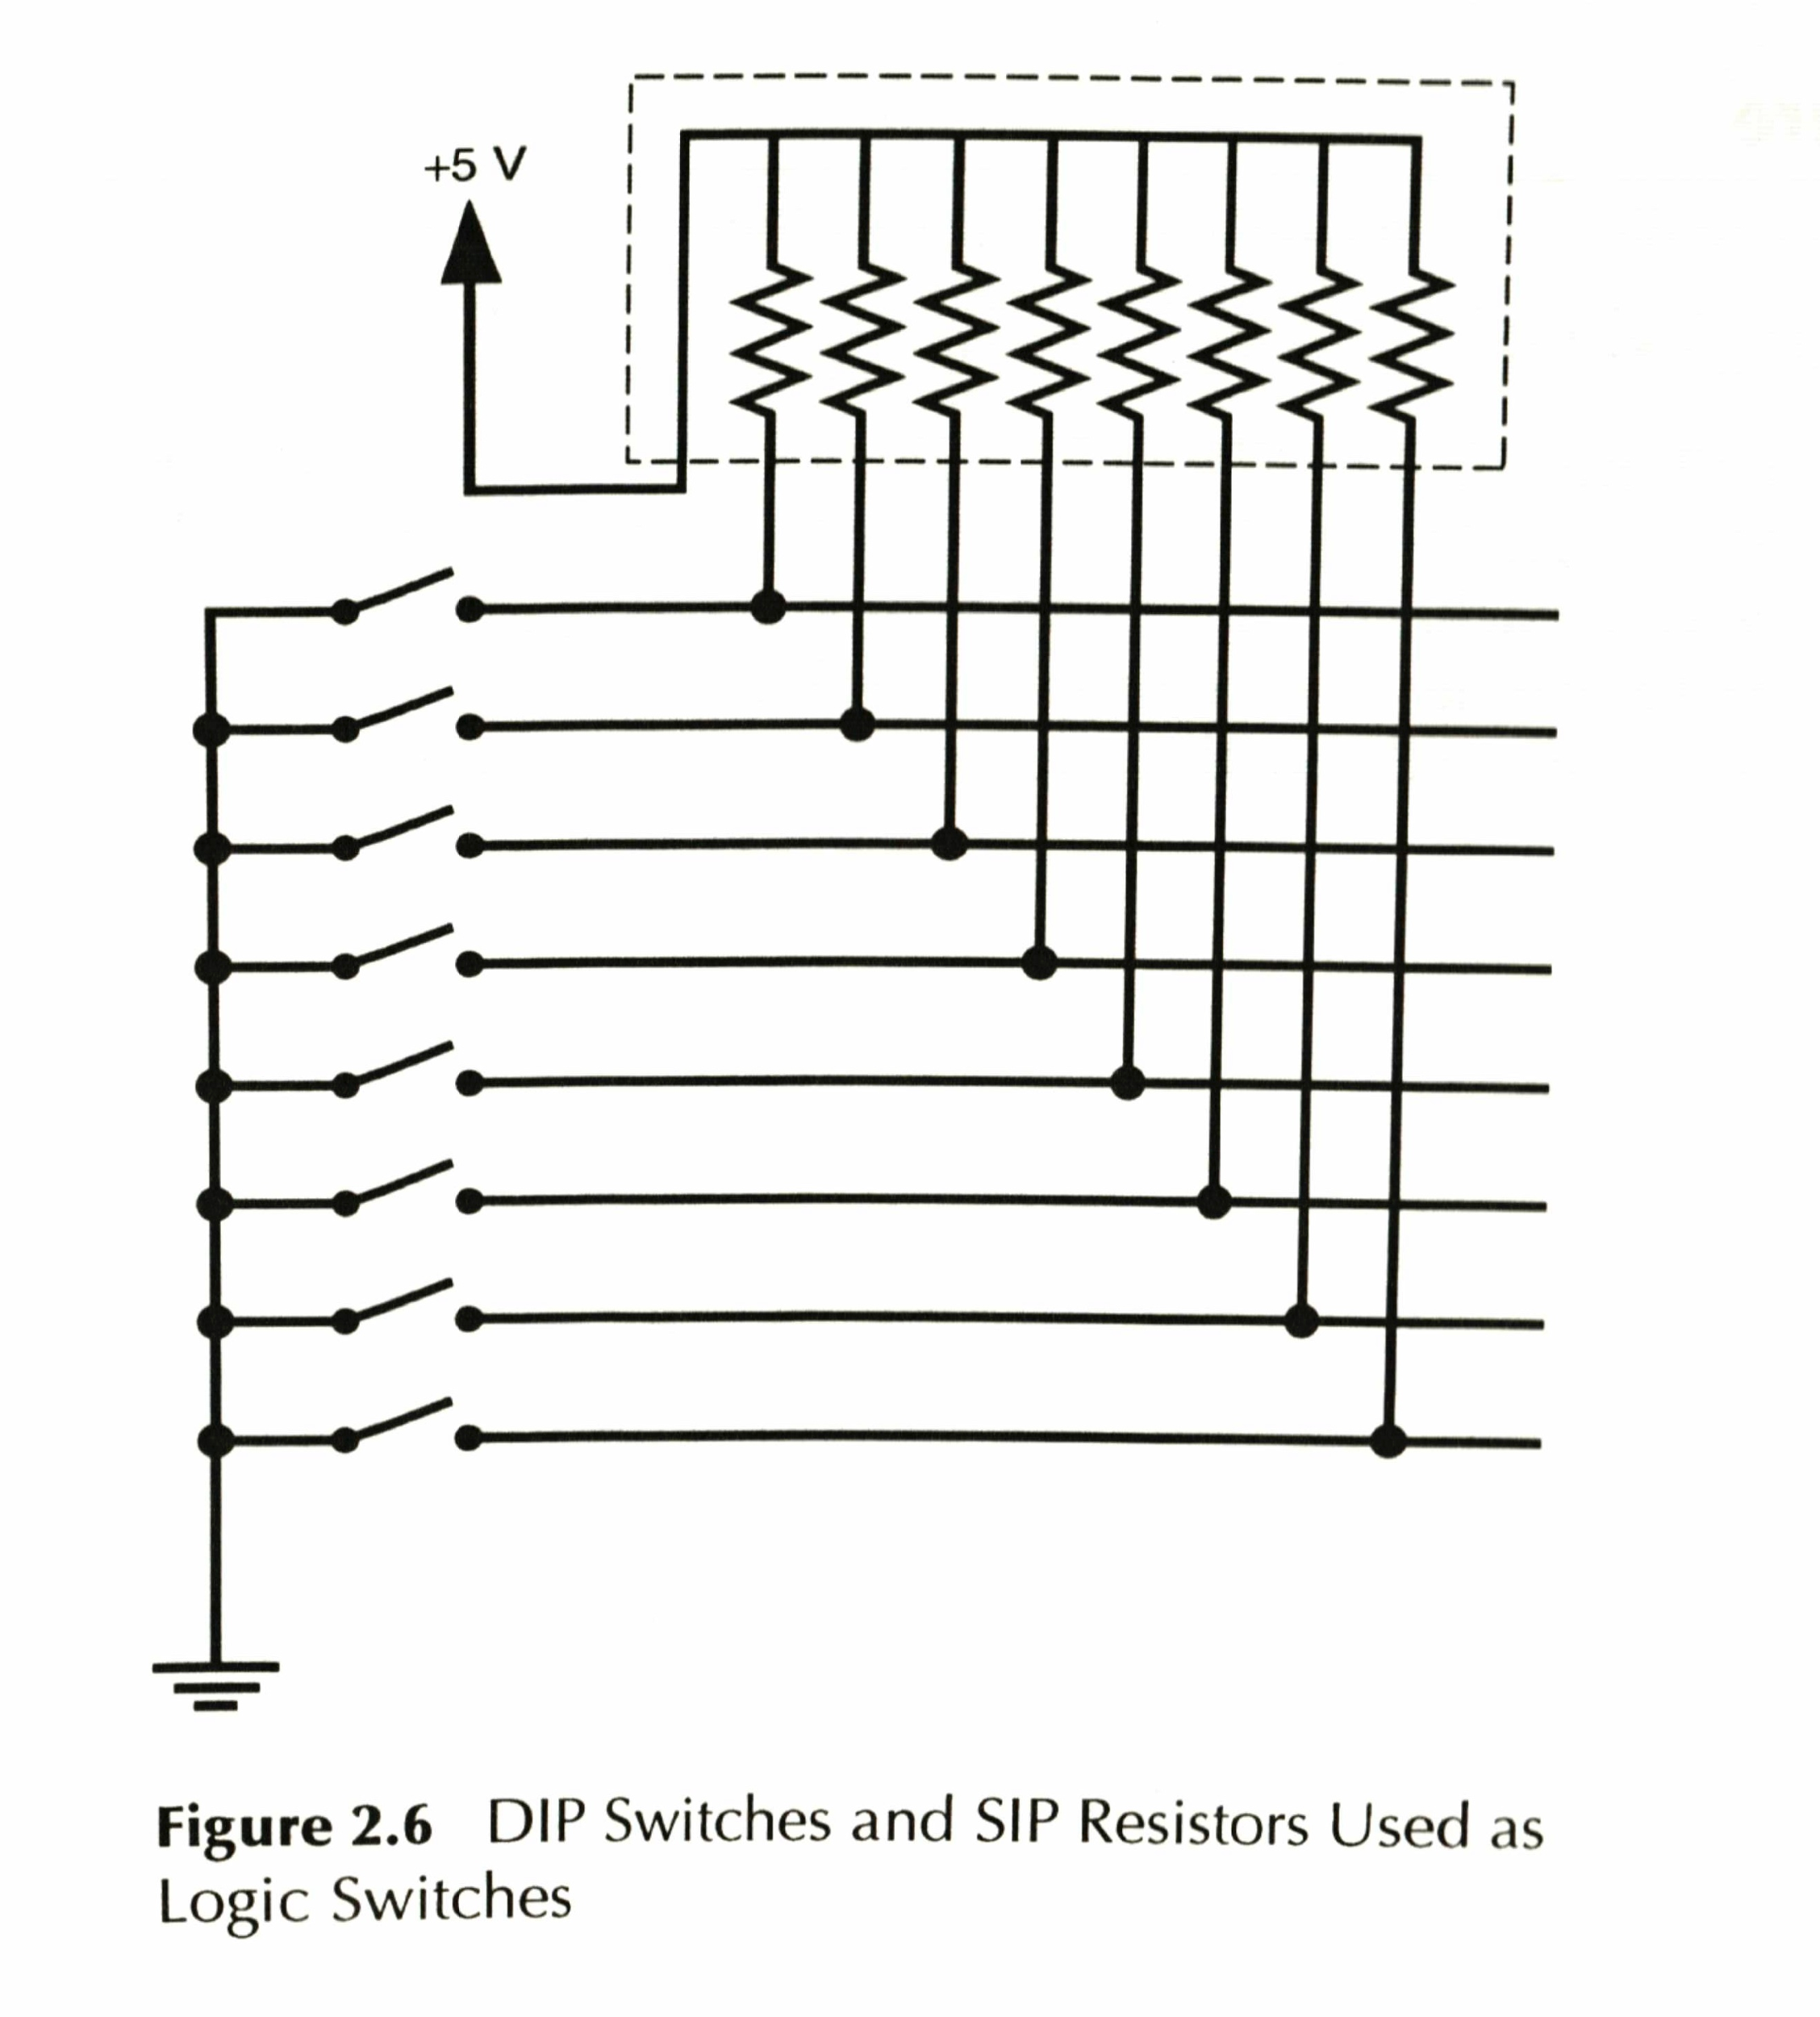 Figure 2.6 DIP Switches and SIP Resistors Used as